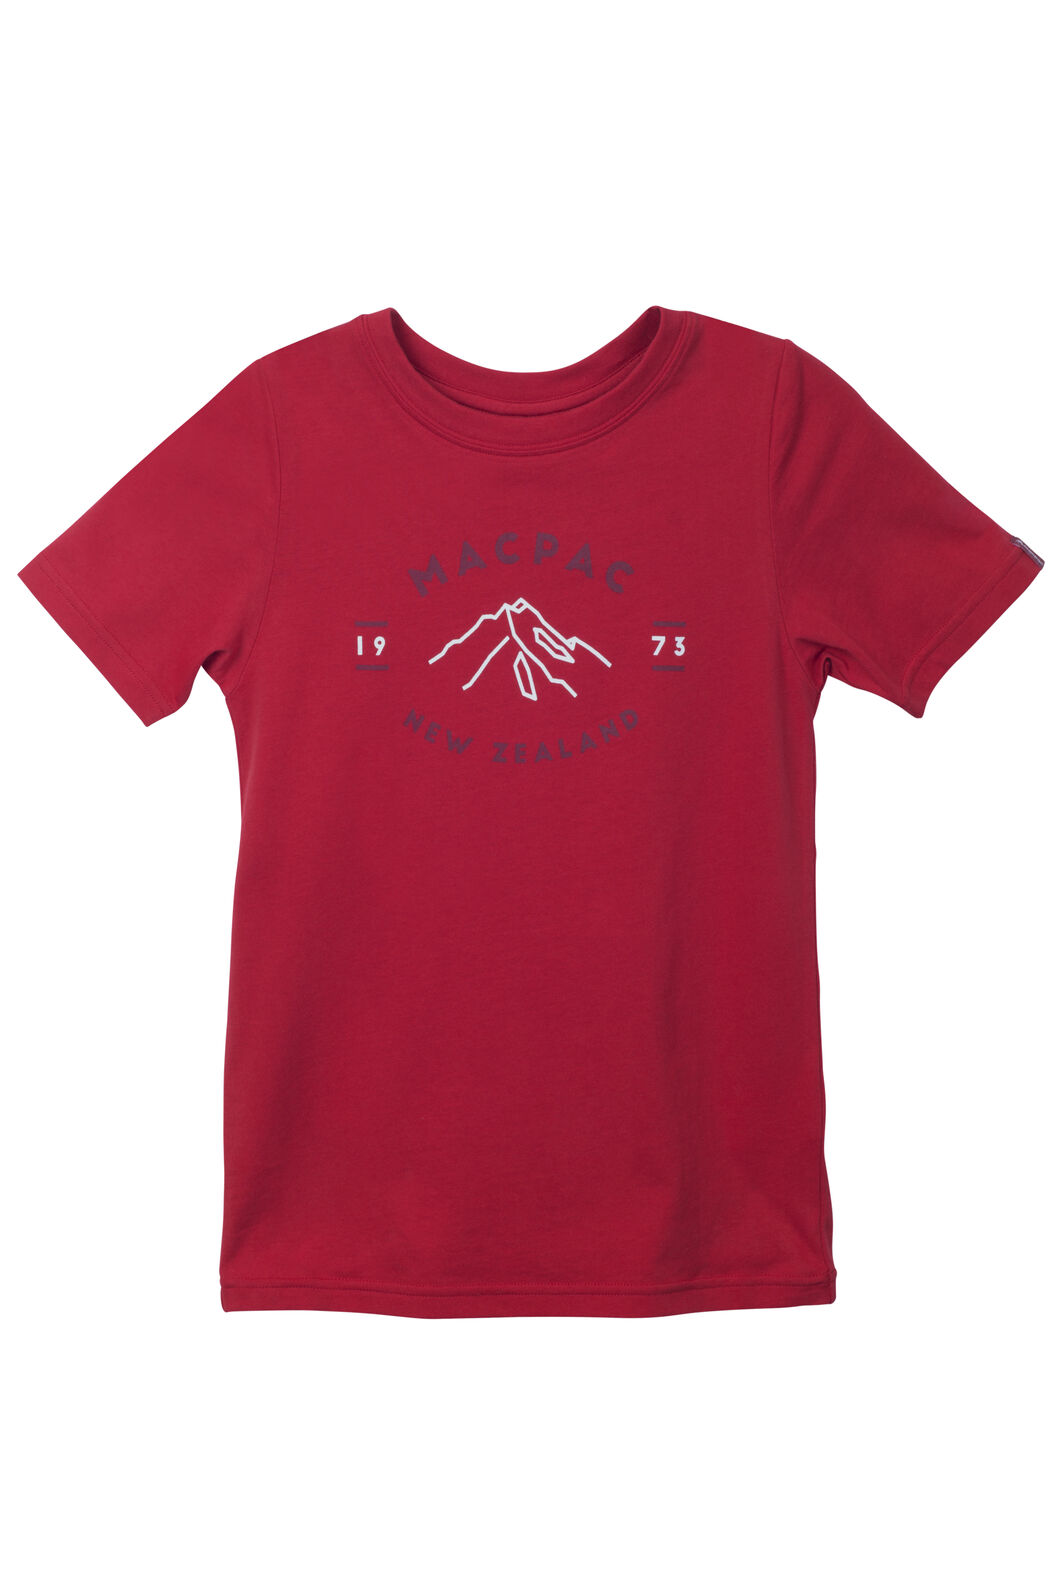 Macpac Mountain Print Organic Cotton Tee - Kids', Pompeian, hi-res